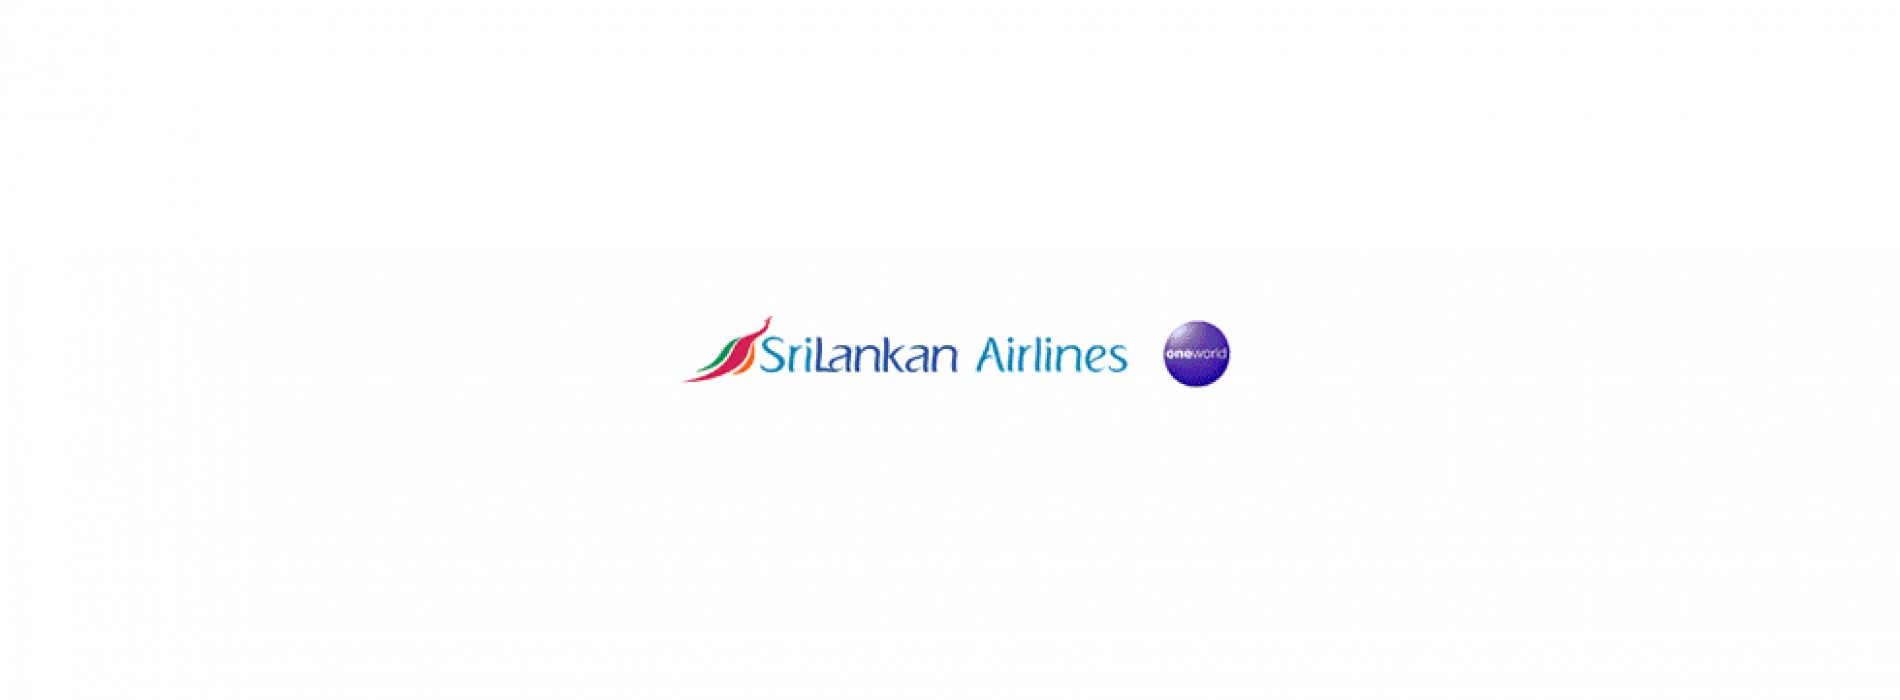 SriLankan Airlines to establish its presence in Australia